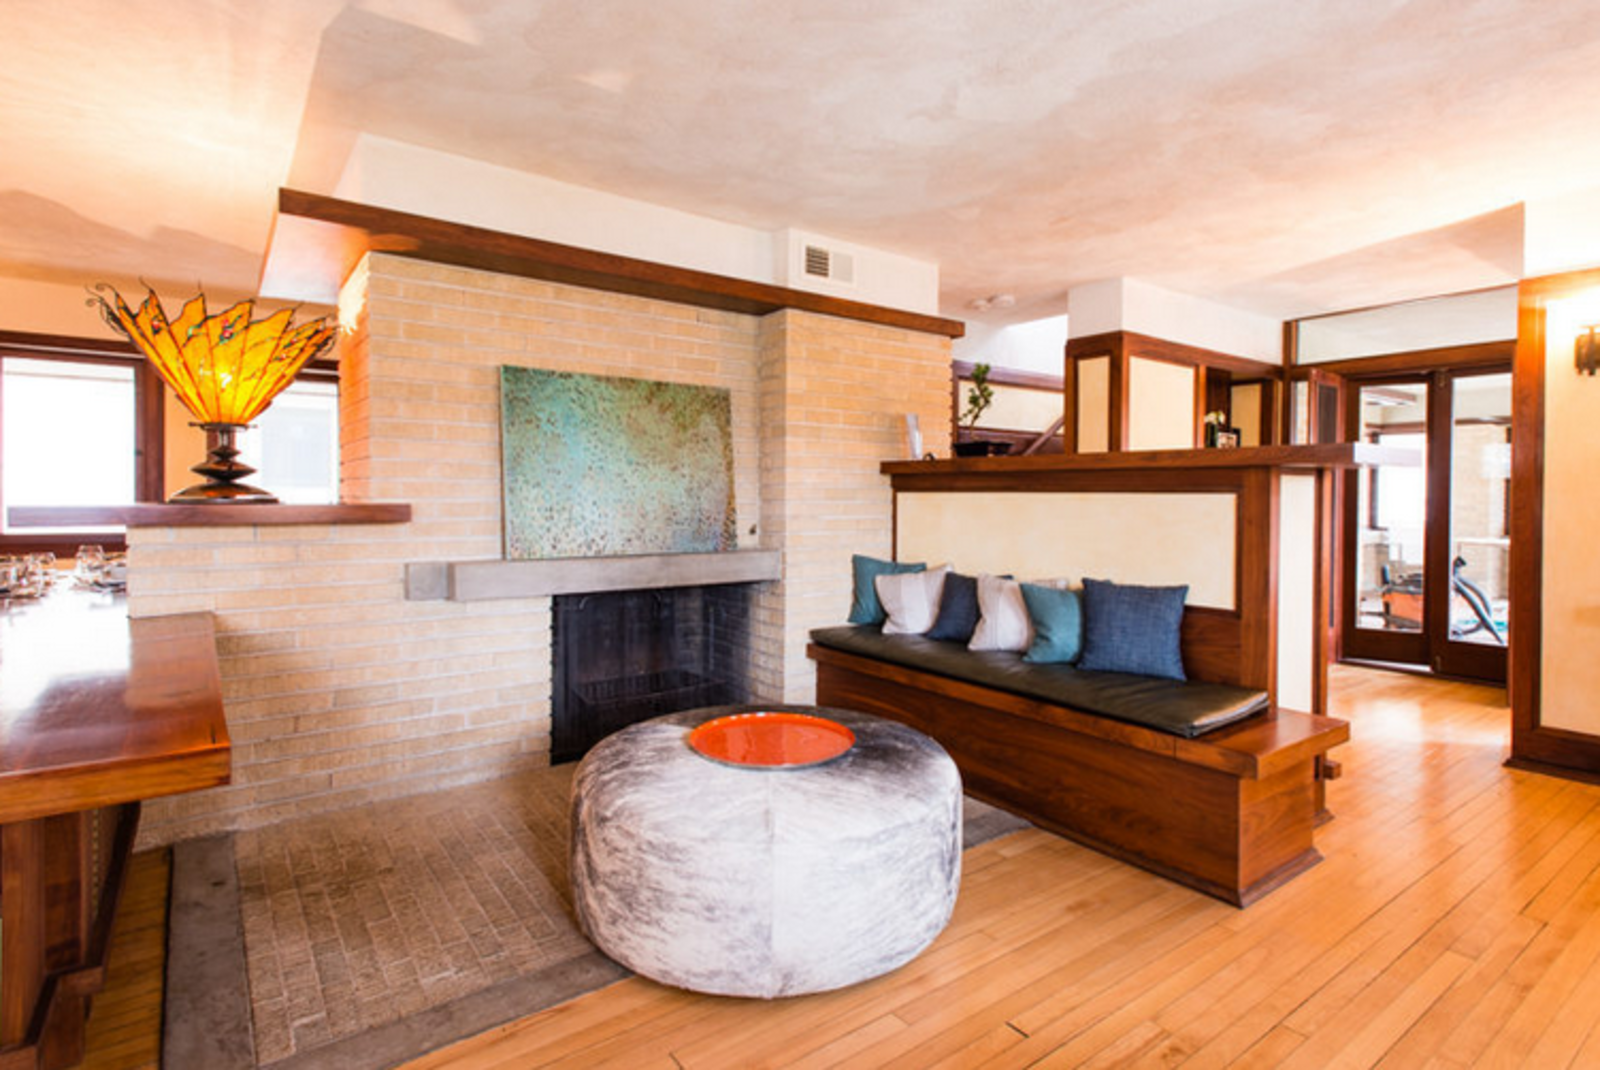 After a two year long renovation, the Frank Lloyd Wright's Emil Bach House will soon be open to the public. Curbed Chicago took a full tour of the thoughtful renovation. Photo by Nicholas James Mid Modern by Jonathan Simcoe